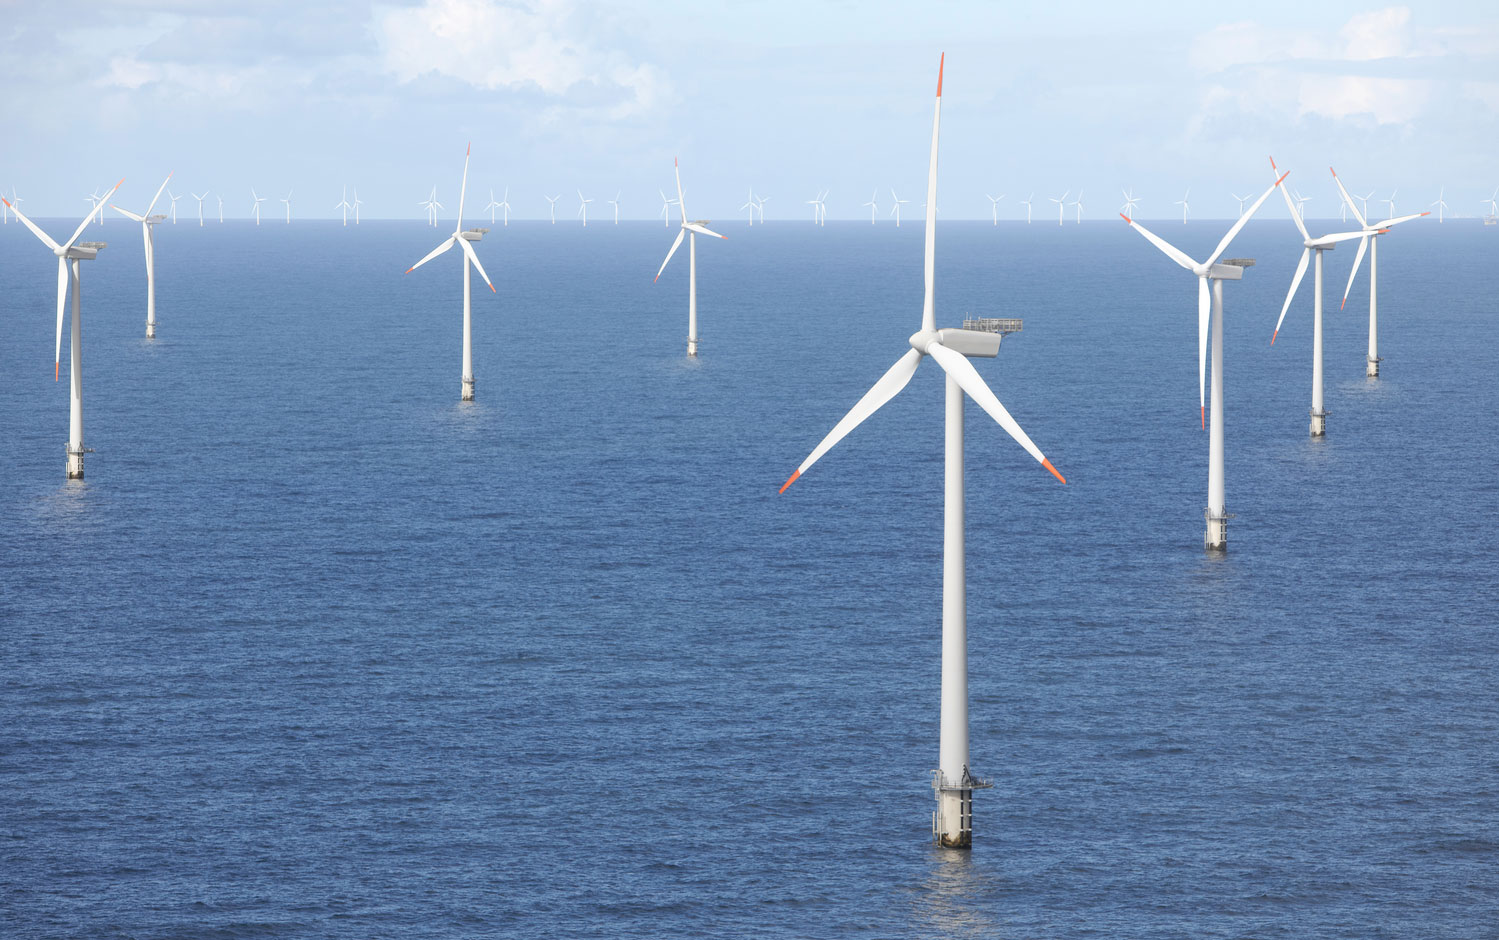 ABB wins order of more than $250 million to connect the world's largest offshore wind farm to UK grid / Pressebild